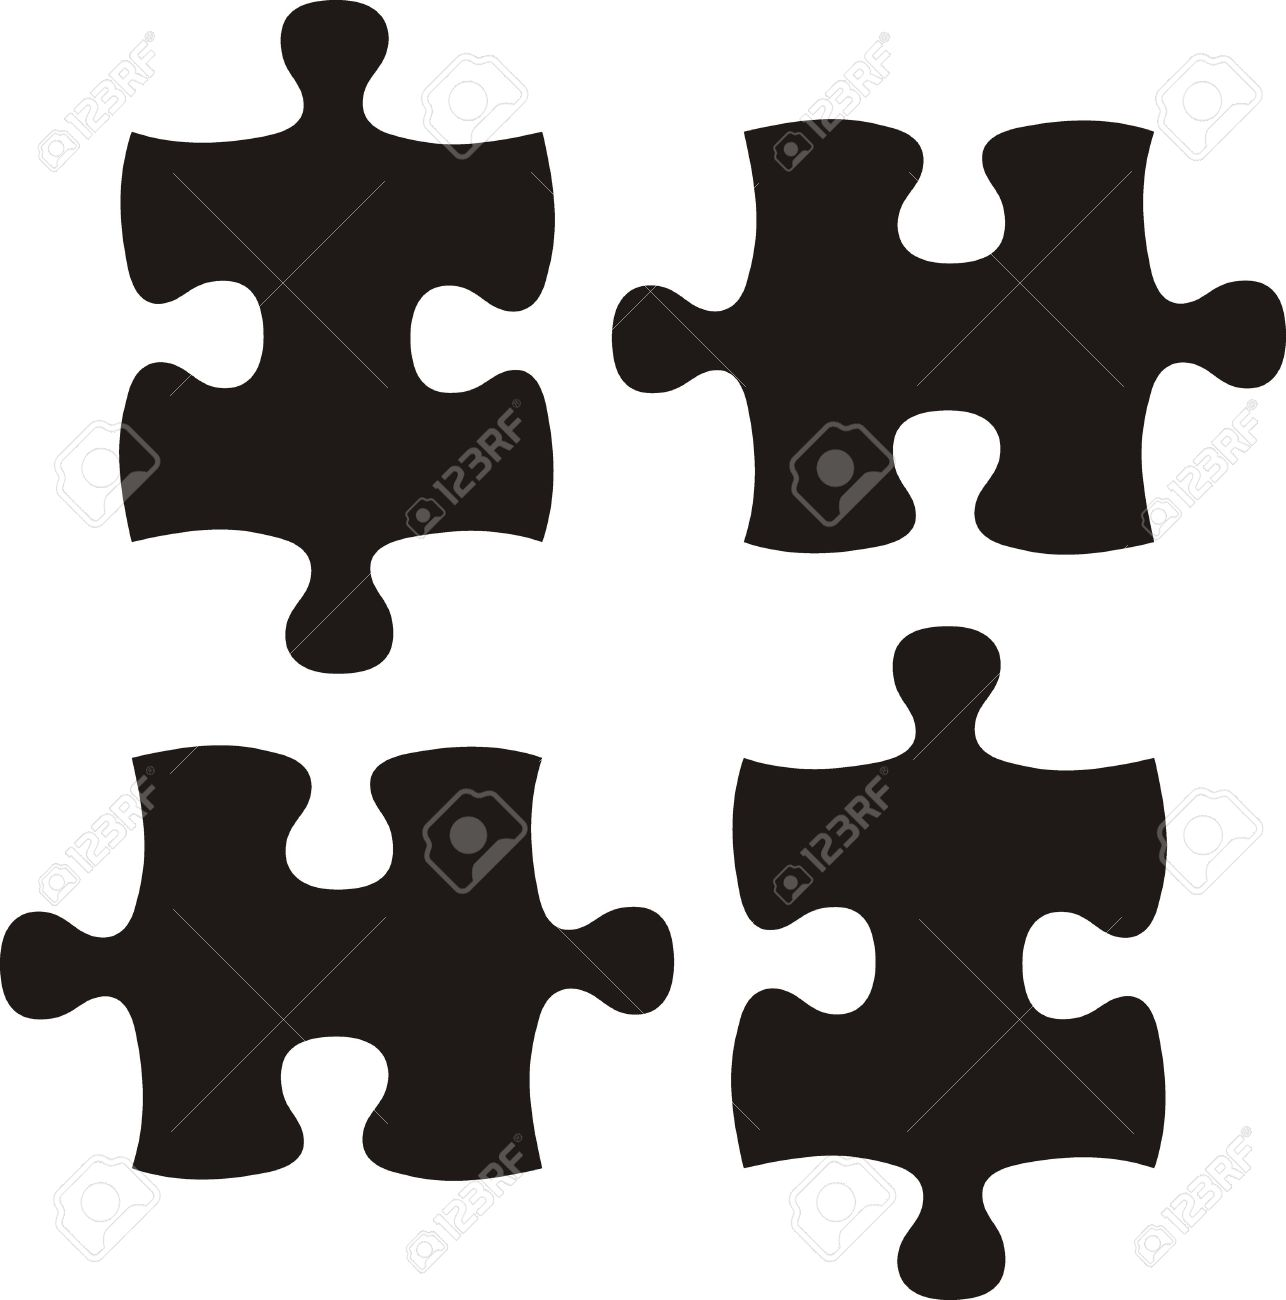 Puzzle Pieces Vector File Very Easy To Edit Individual Objects Stock